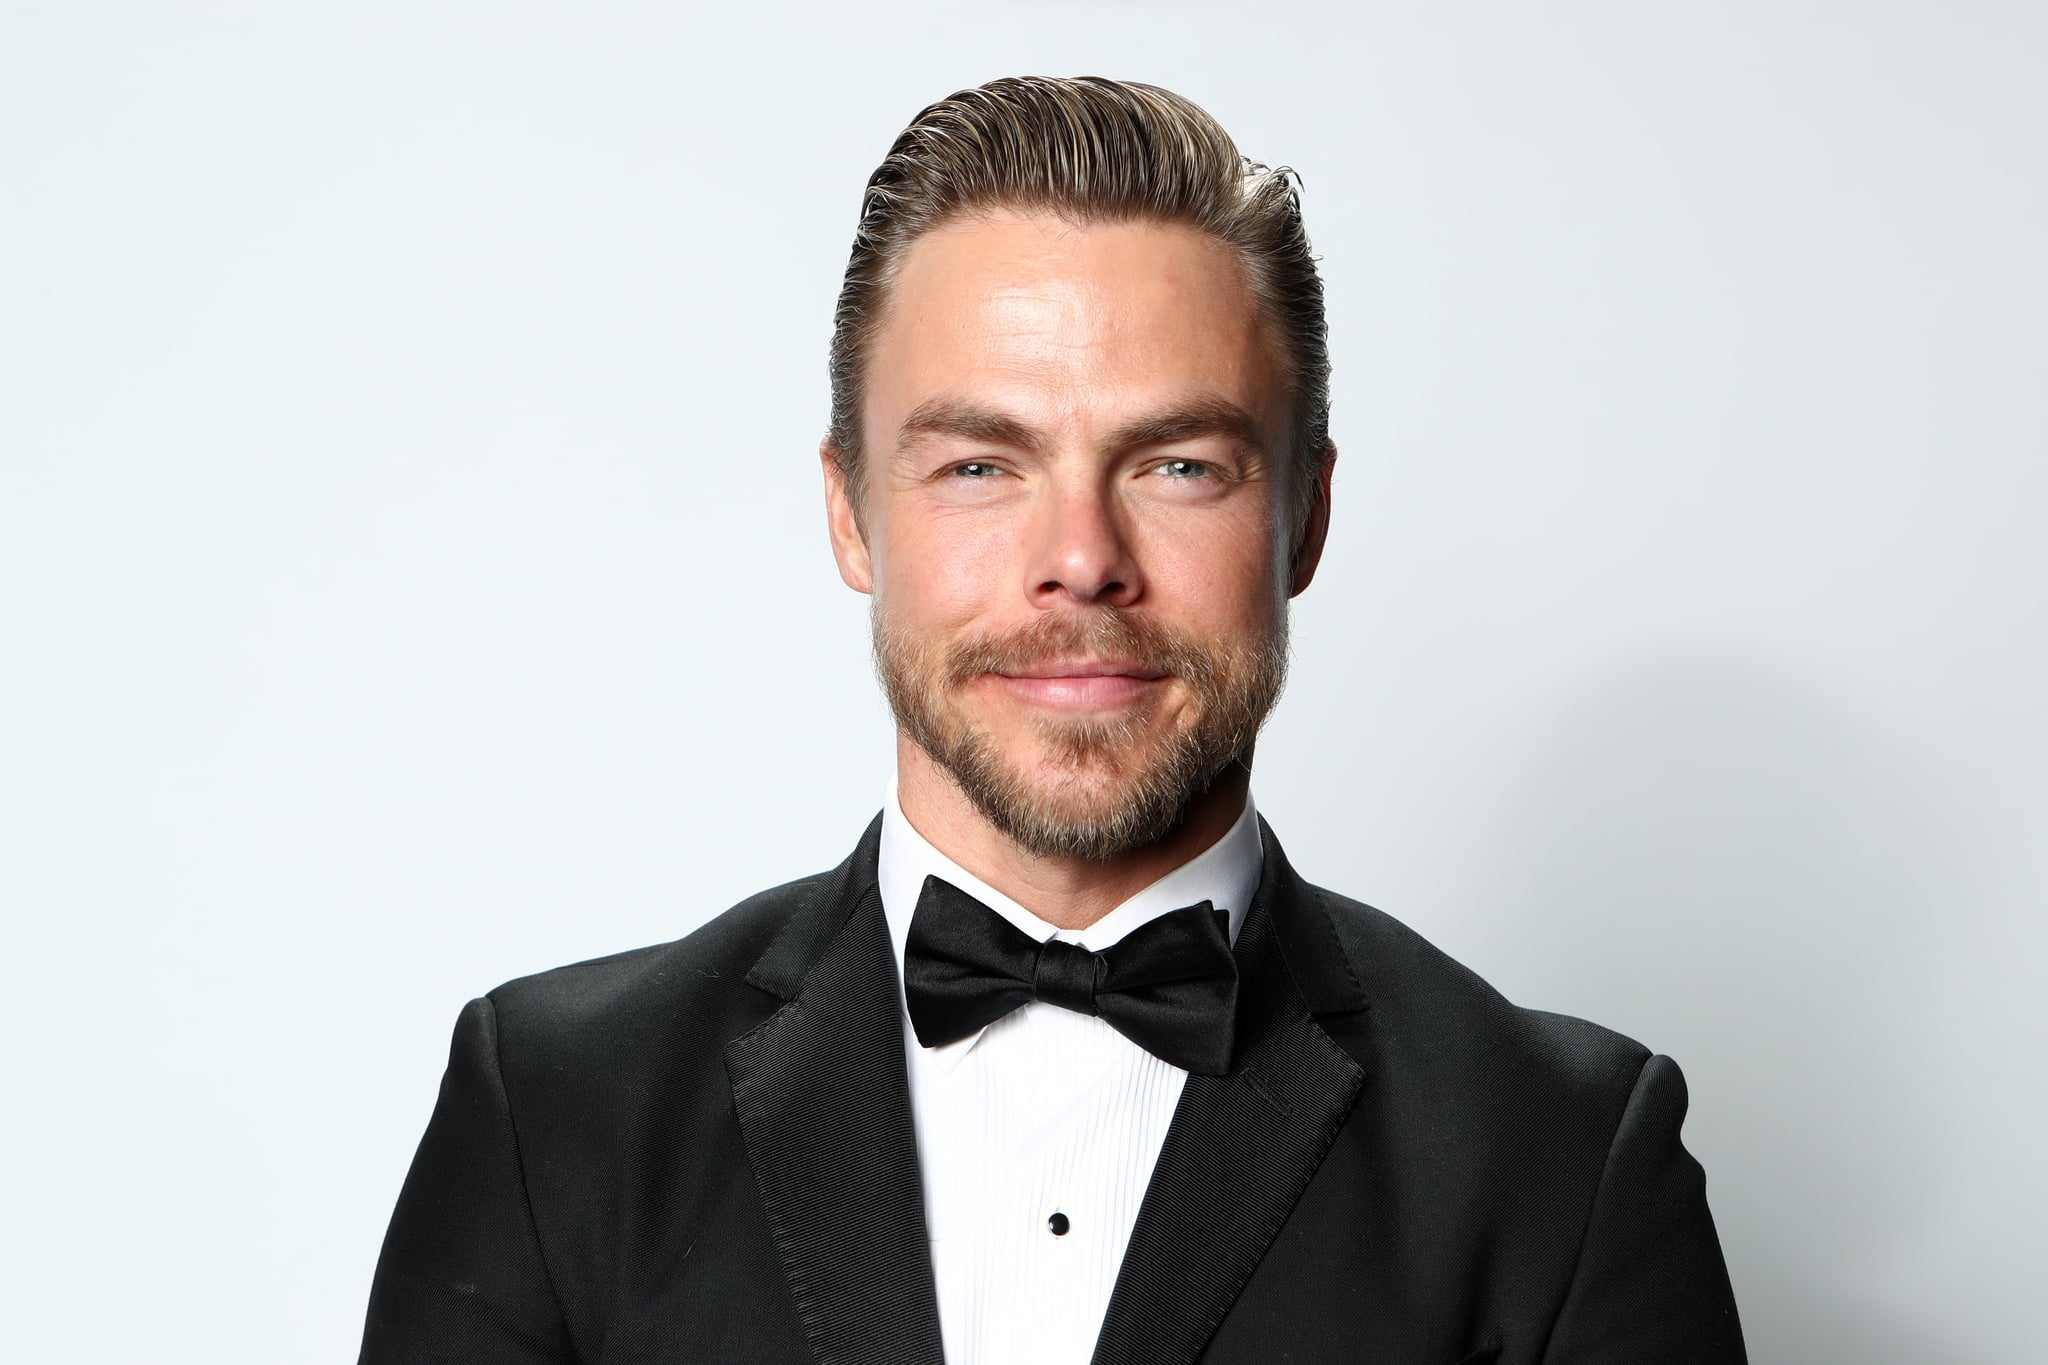 LOS ANGELES, CALIFORNIA - FEBRUARY 09: Derek Hough attends IMDb LIVE Presented By M&M'S At The Elton John AIDS Foundation Academy Awards Viewing Party on February 09, 2020 in Los Angeles, California. (Photo by Rich Polk/Getty Images for IMDb)